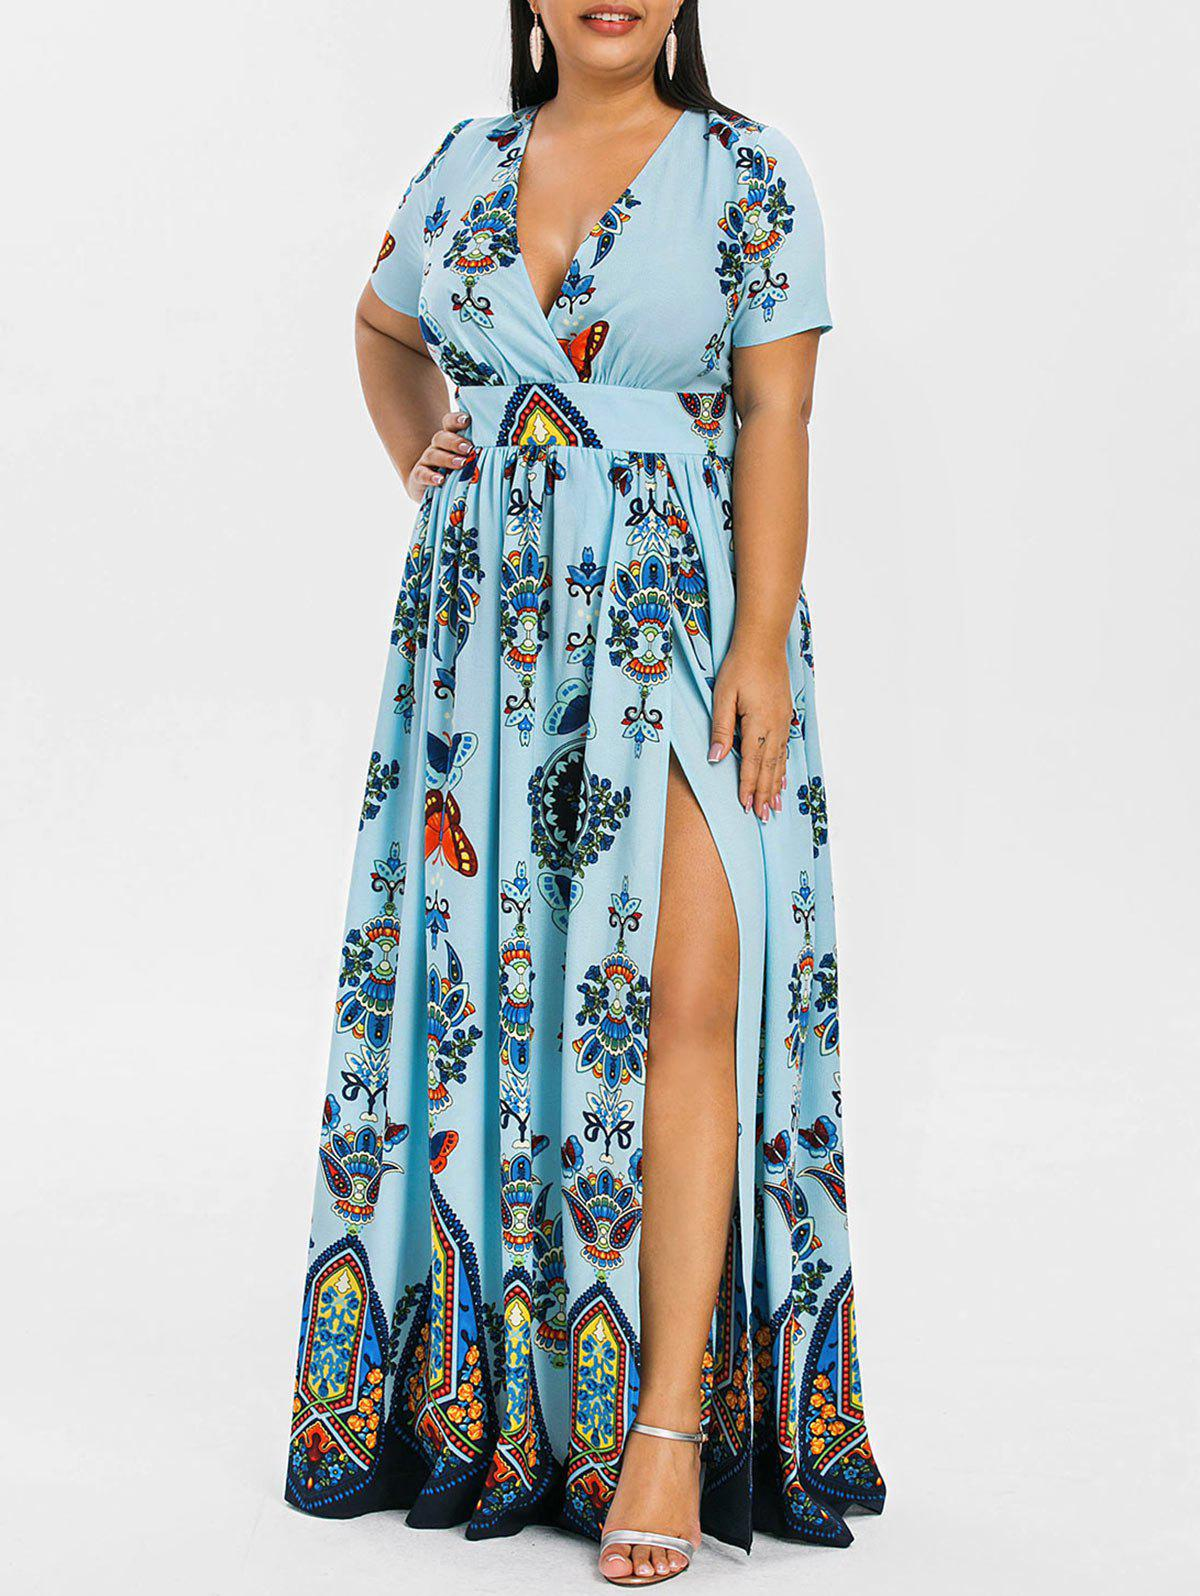 2885670aa27 48% OFF  Plus Size High Waist Maxi Slit Dress